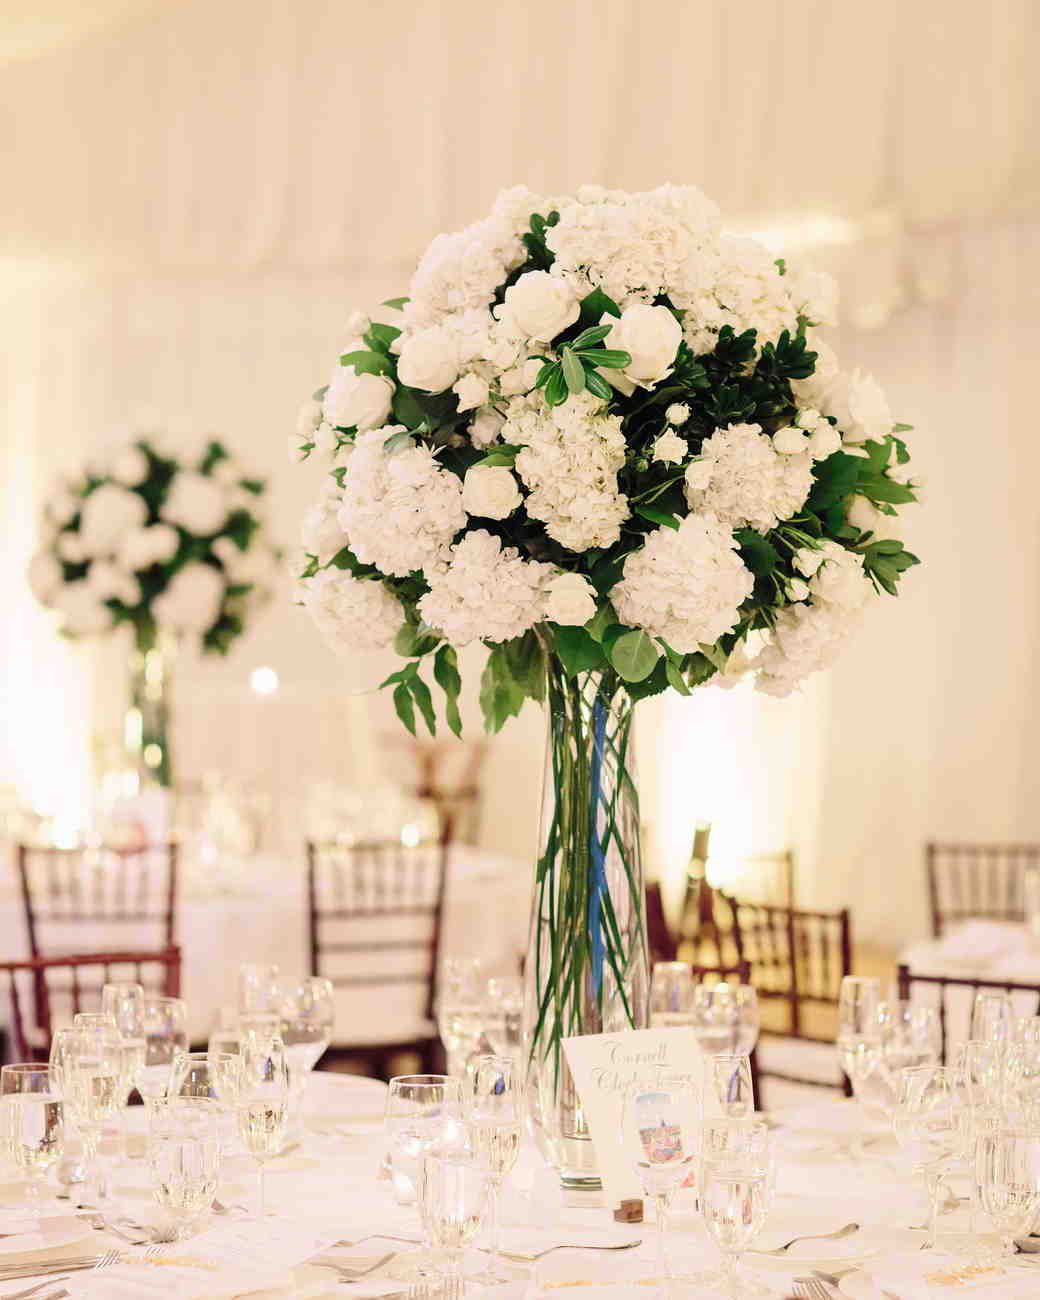 32 Classic Wedding Centerpieces We Love Flower Centerpieces Wedding Classic Wedding Centerpieces Wedding Centerpieces Diy